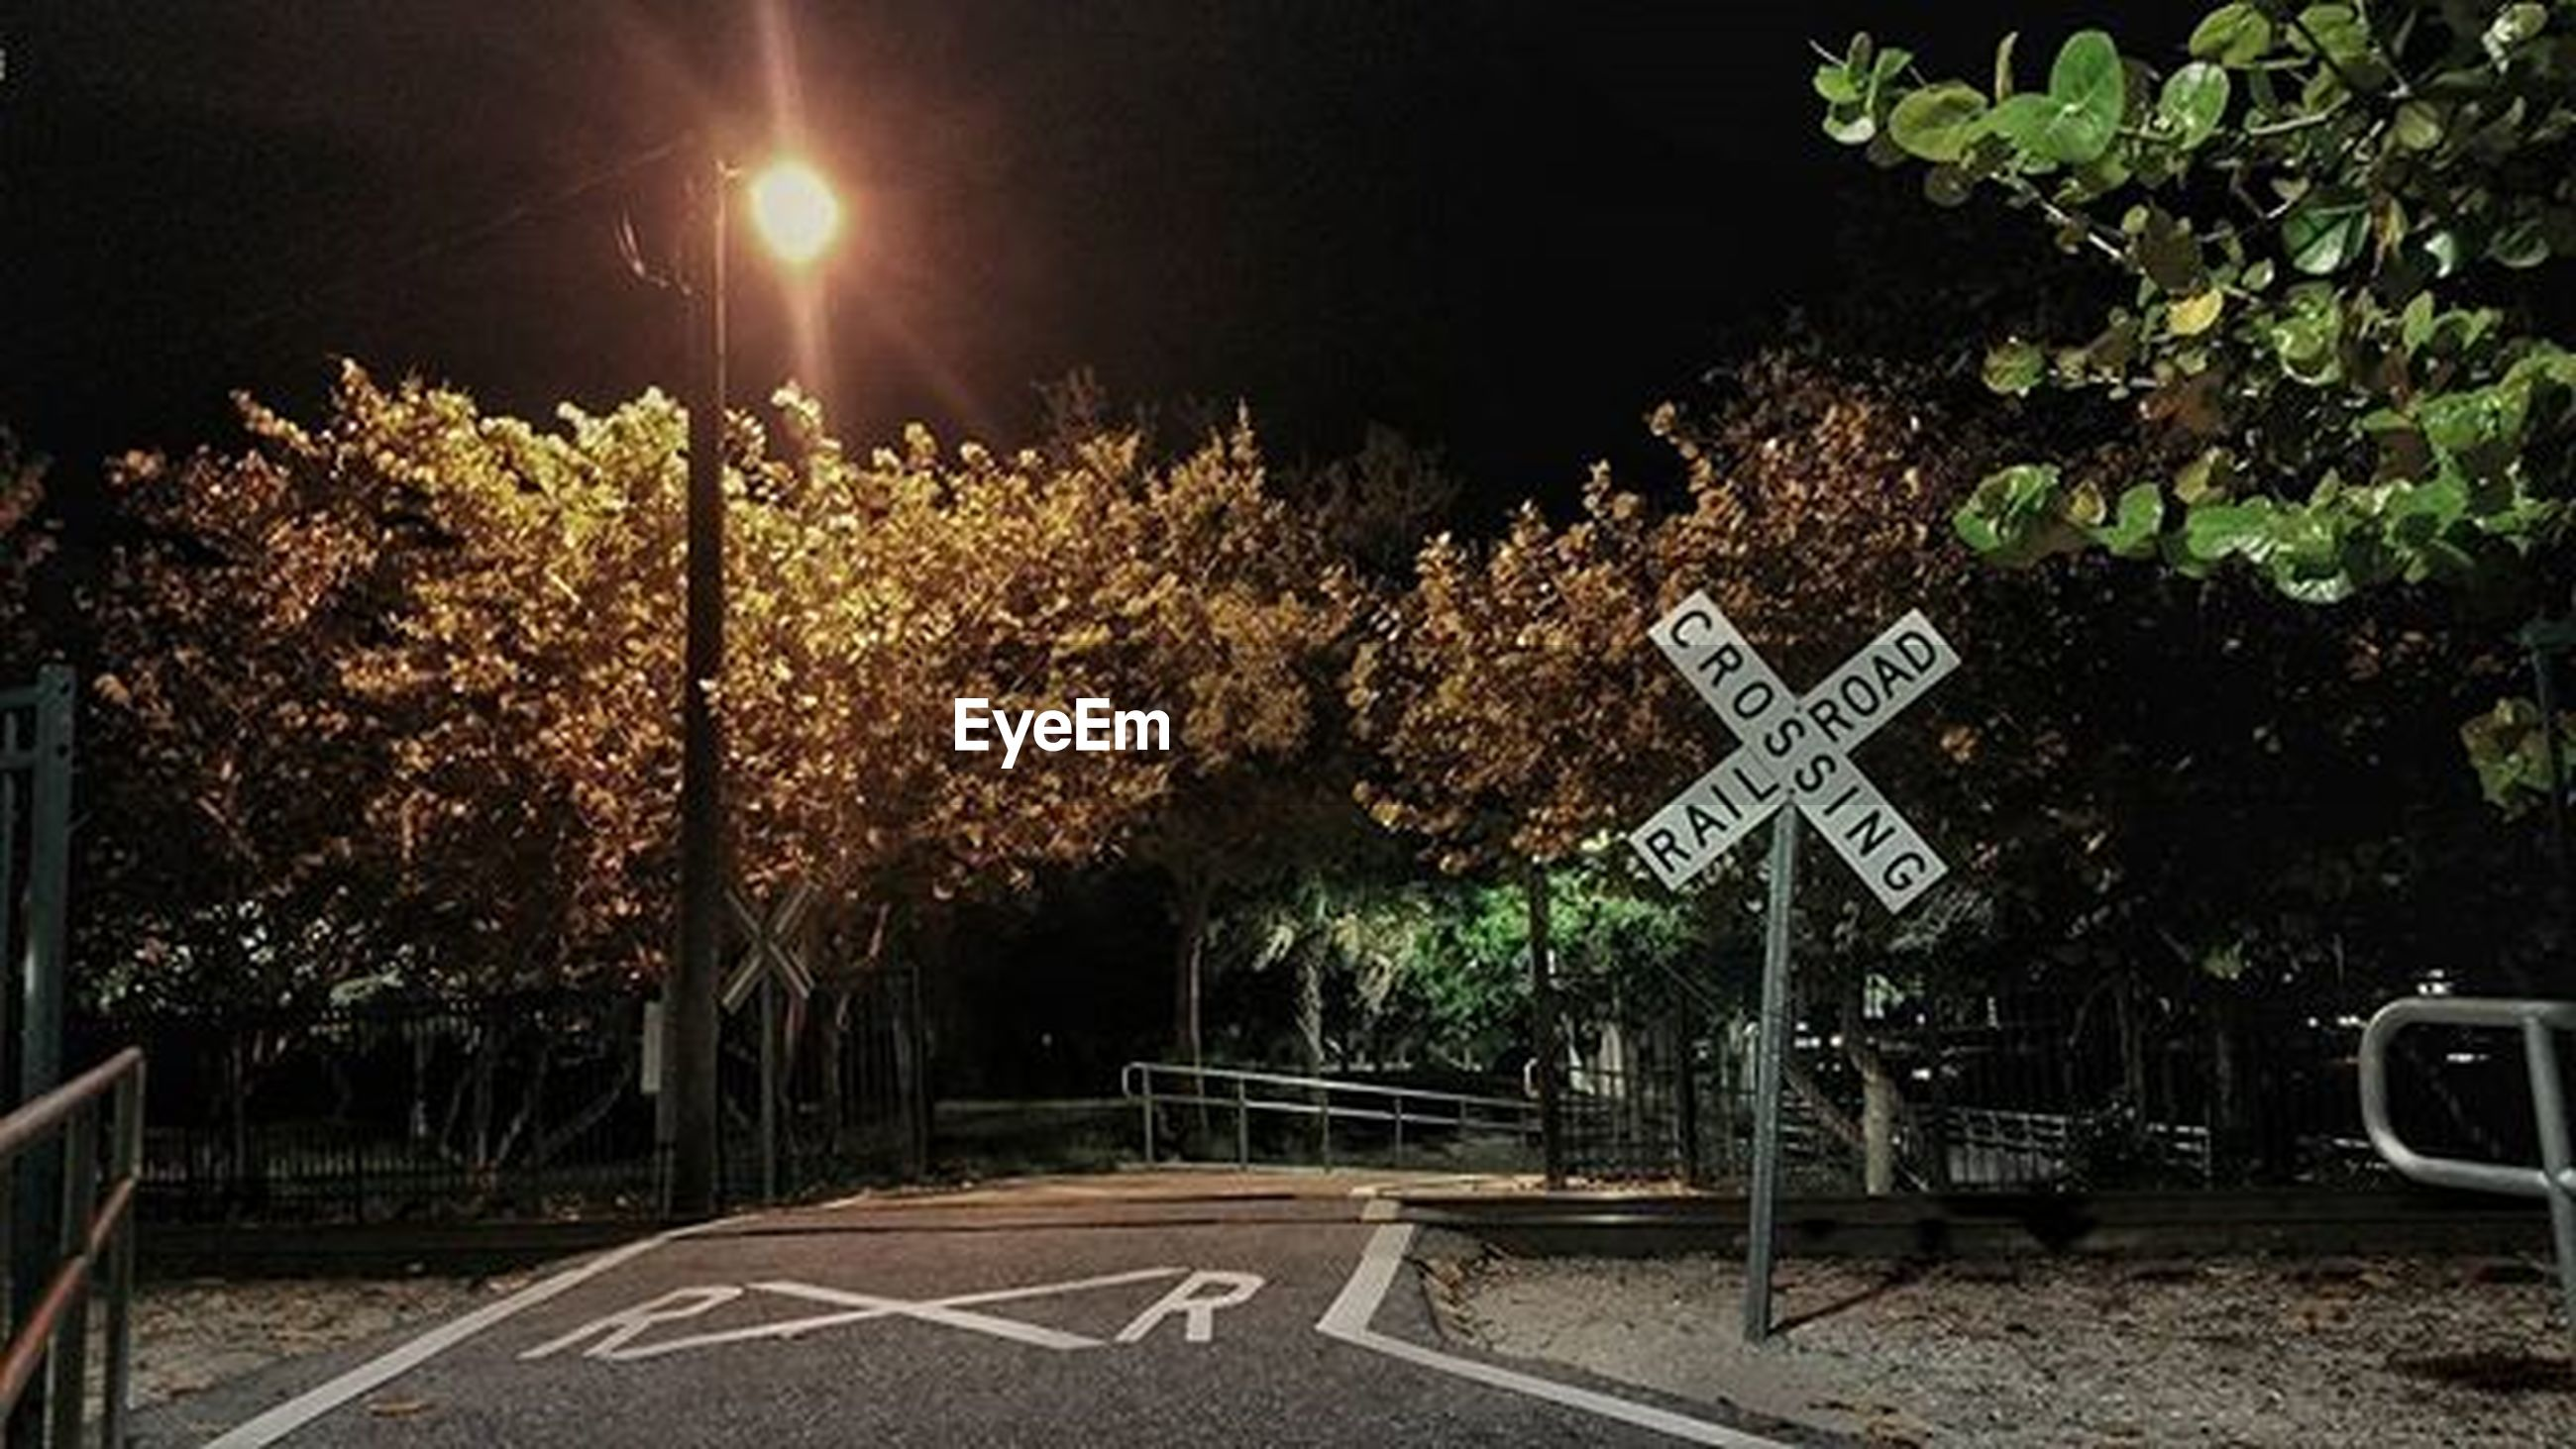 text, tree, communication, plant, night, western script, growth, information sign, illuminated, street light, road sign, transportation, sign, lighting equipment, guidance, road, outdoors, street, no people, nature